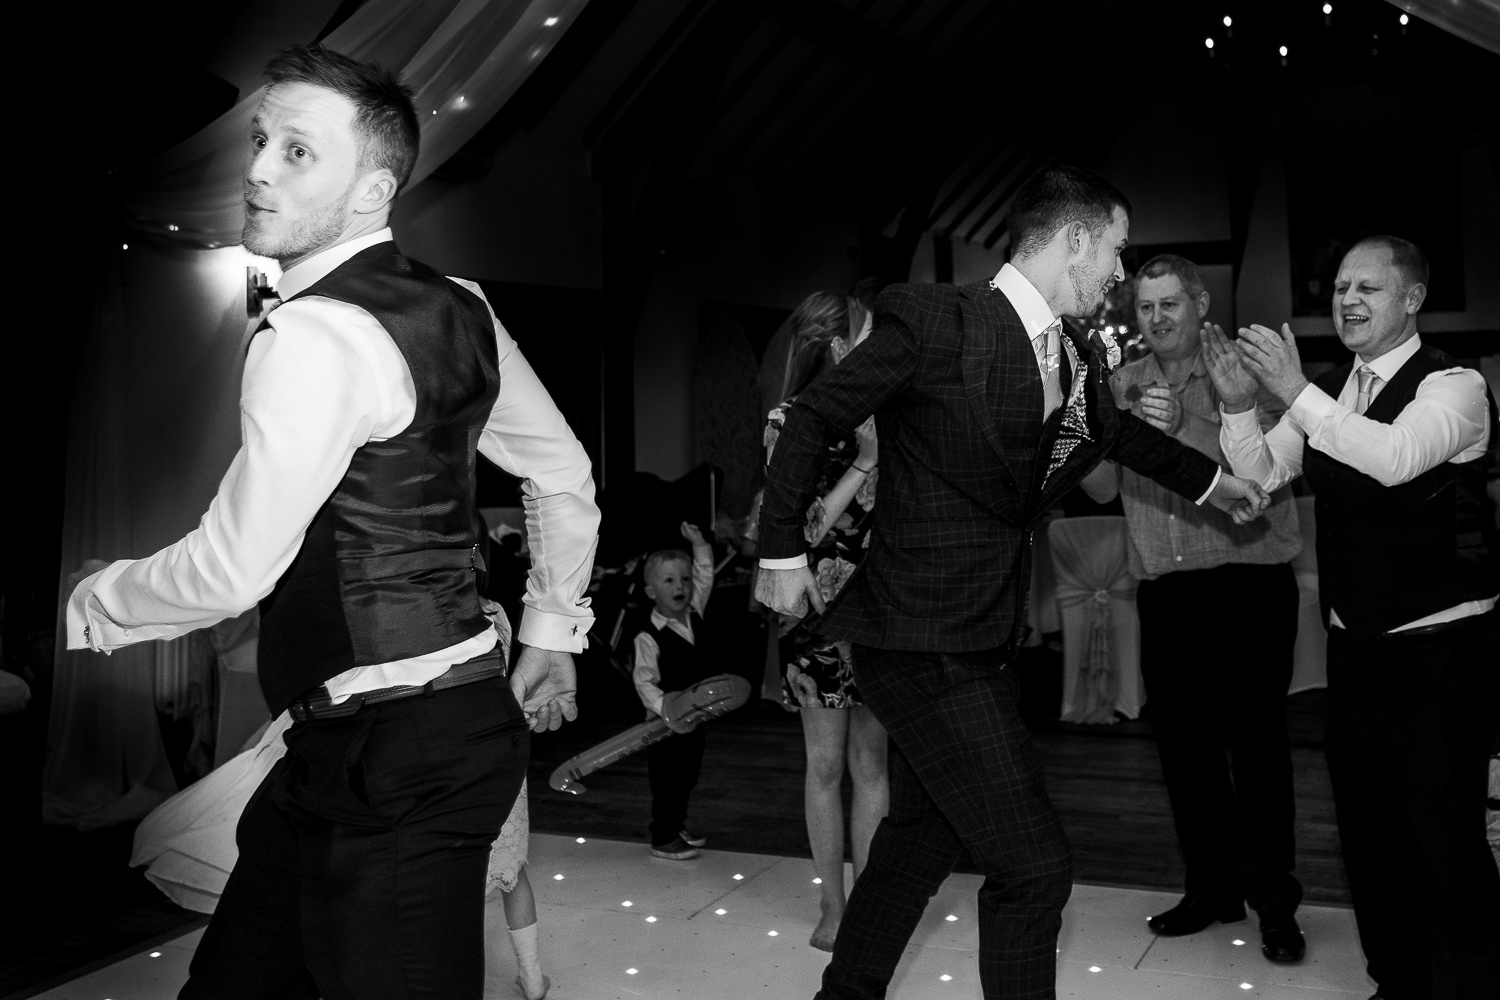 Groom and best man dancing